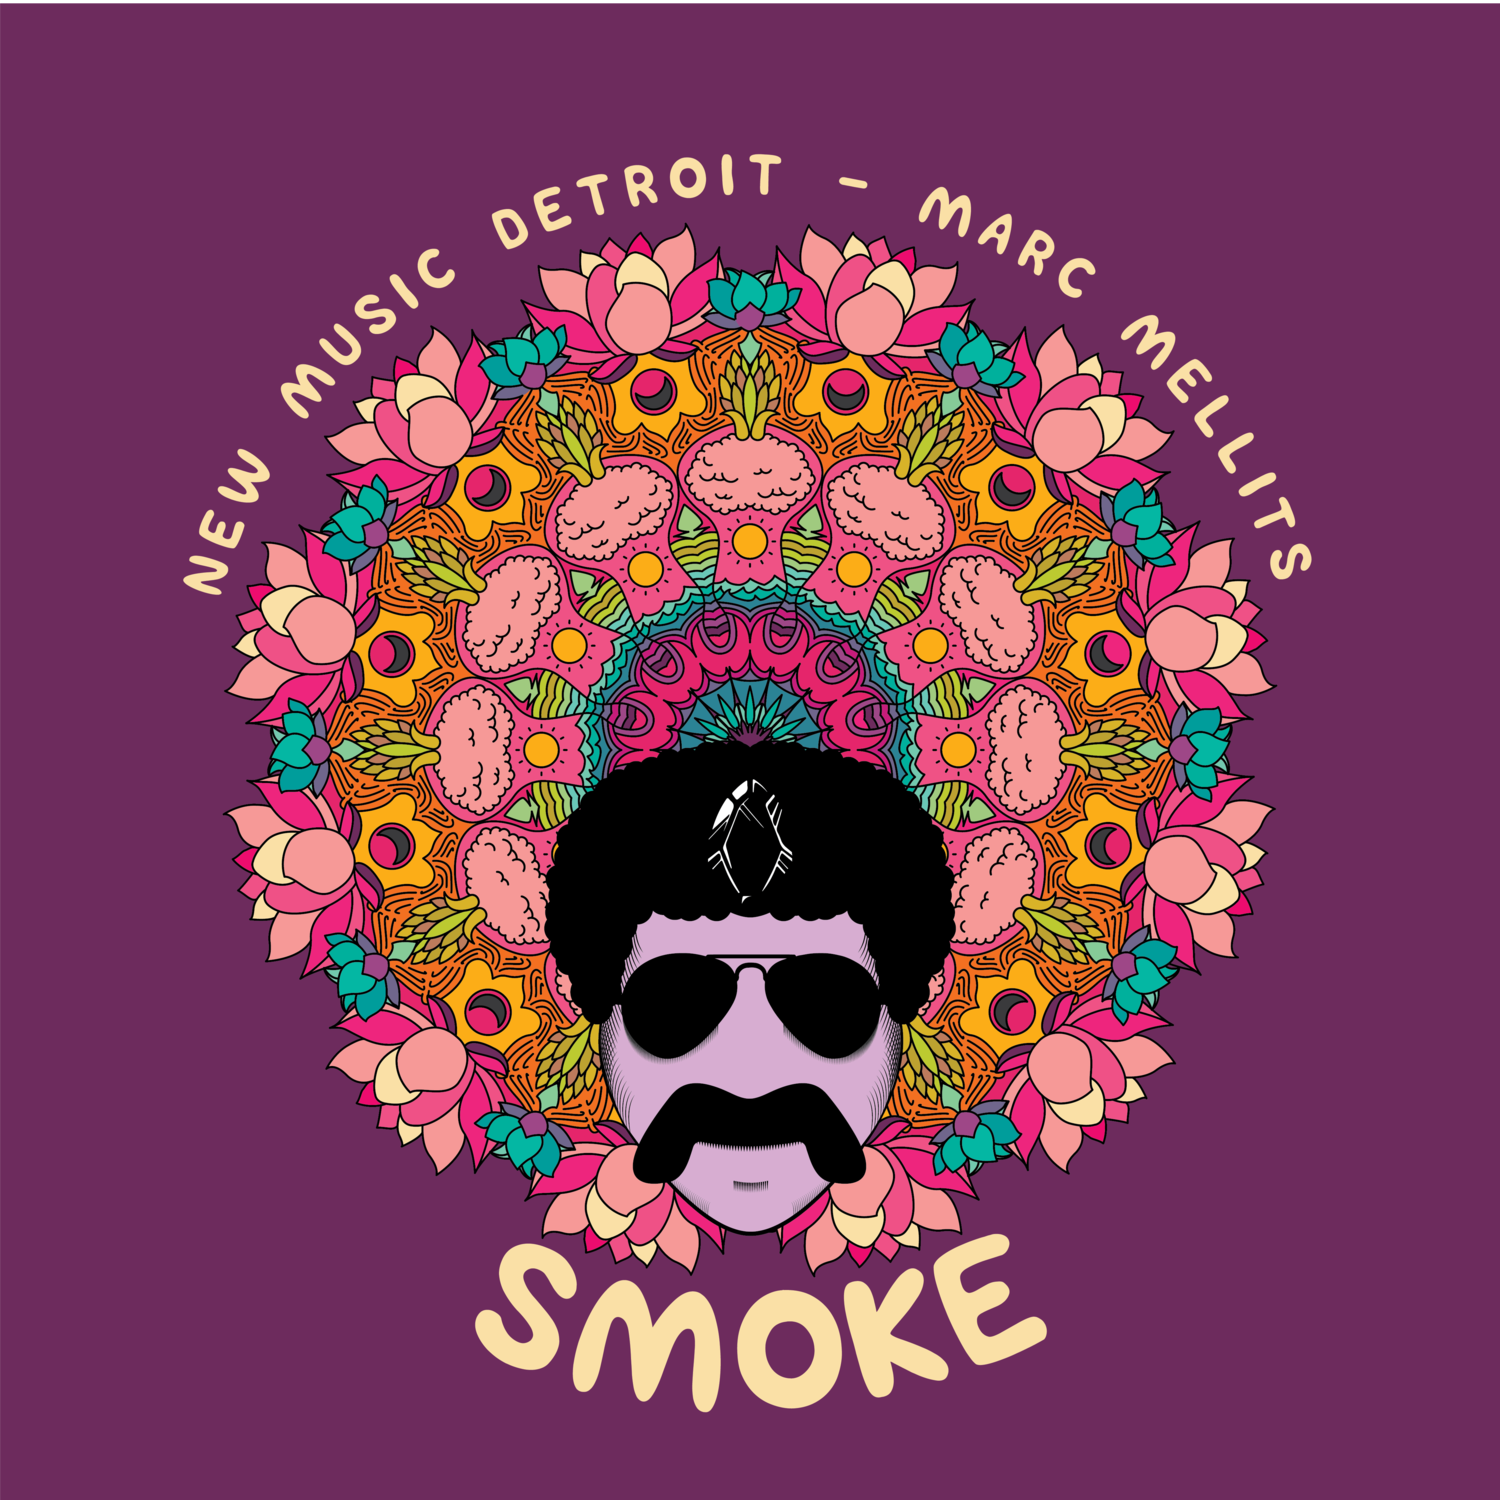 Smoke: Music of marC mellits